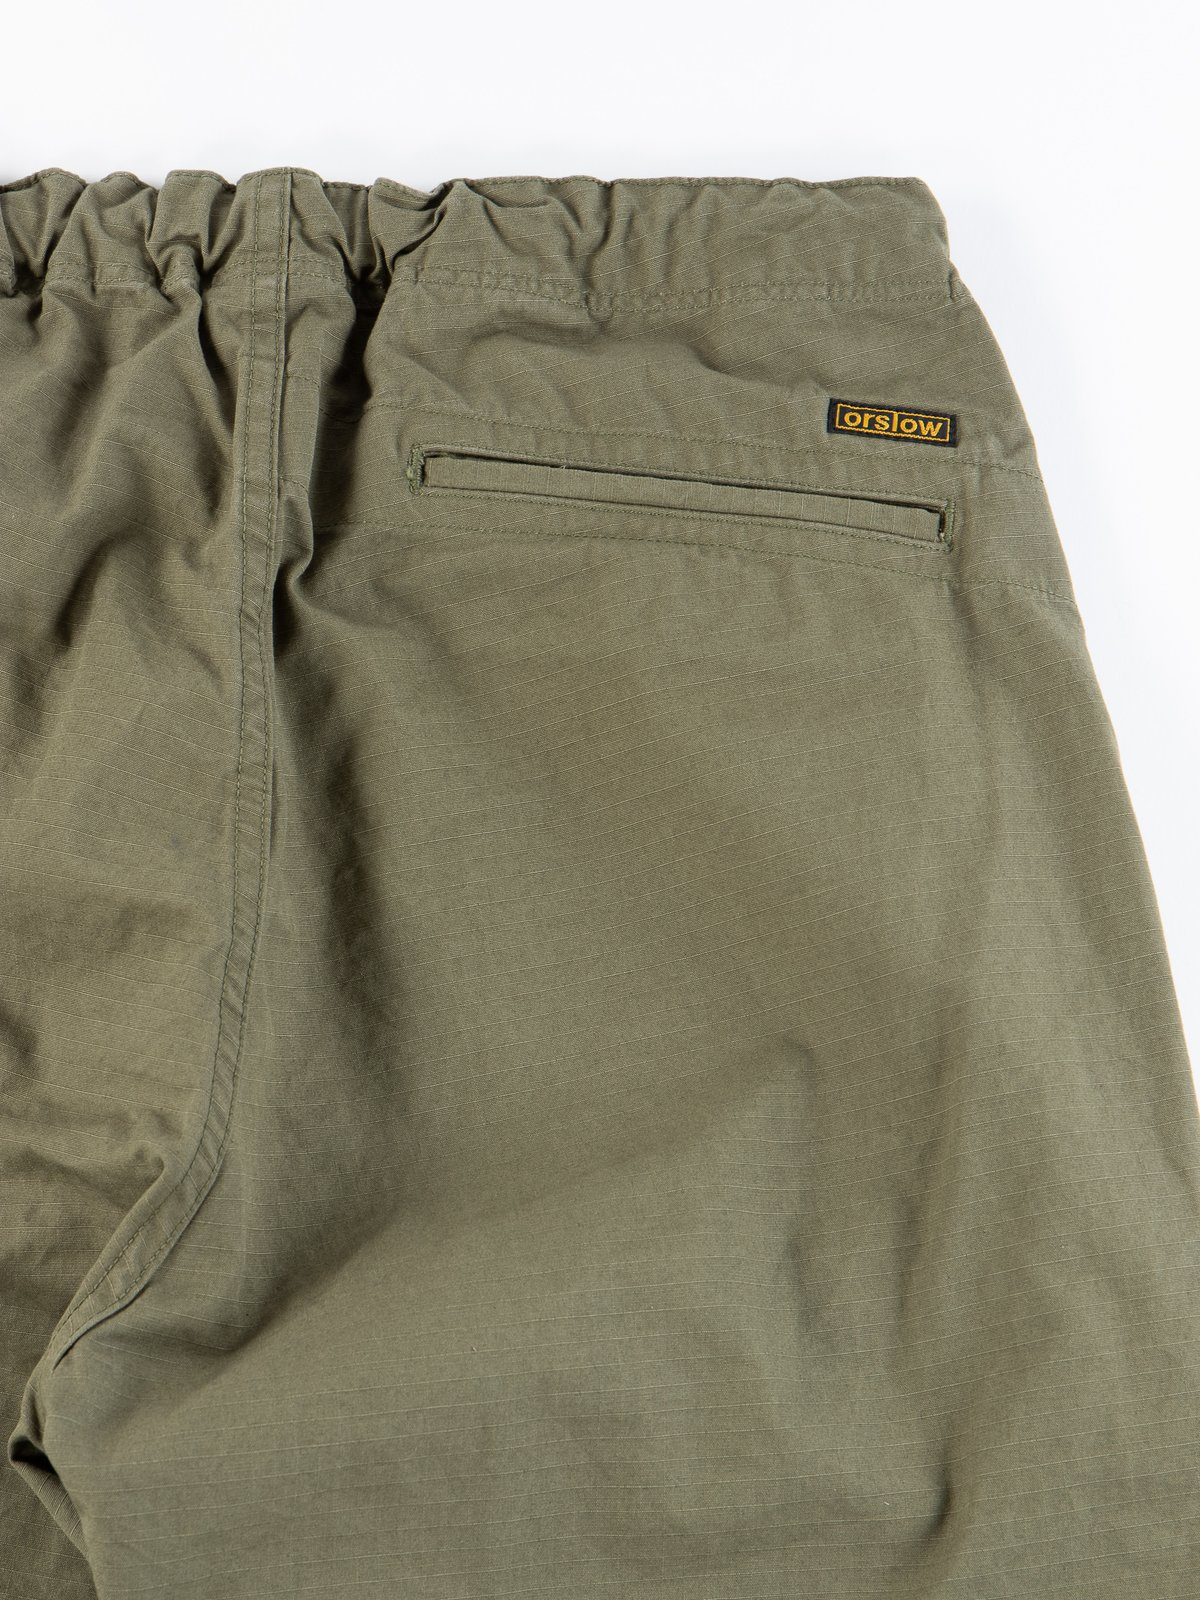 Army Green Ripstop New Yorker Pant - Image 5